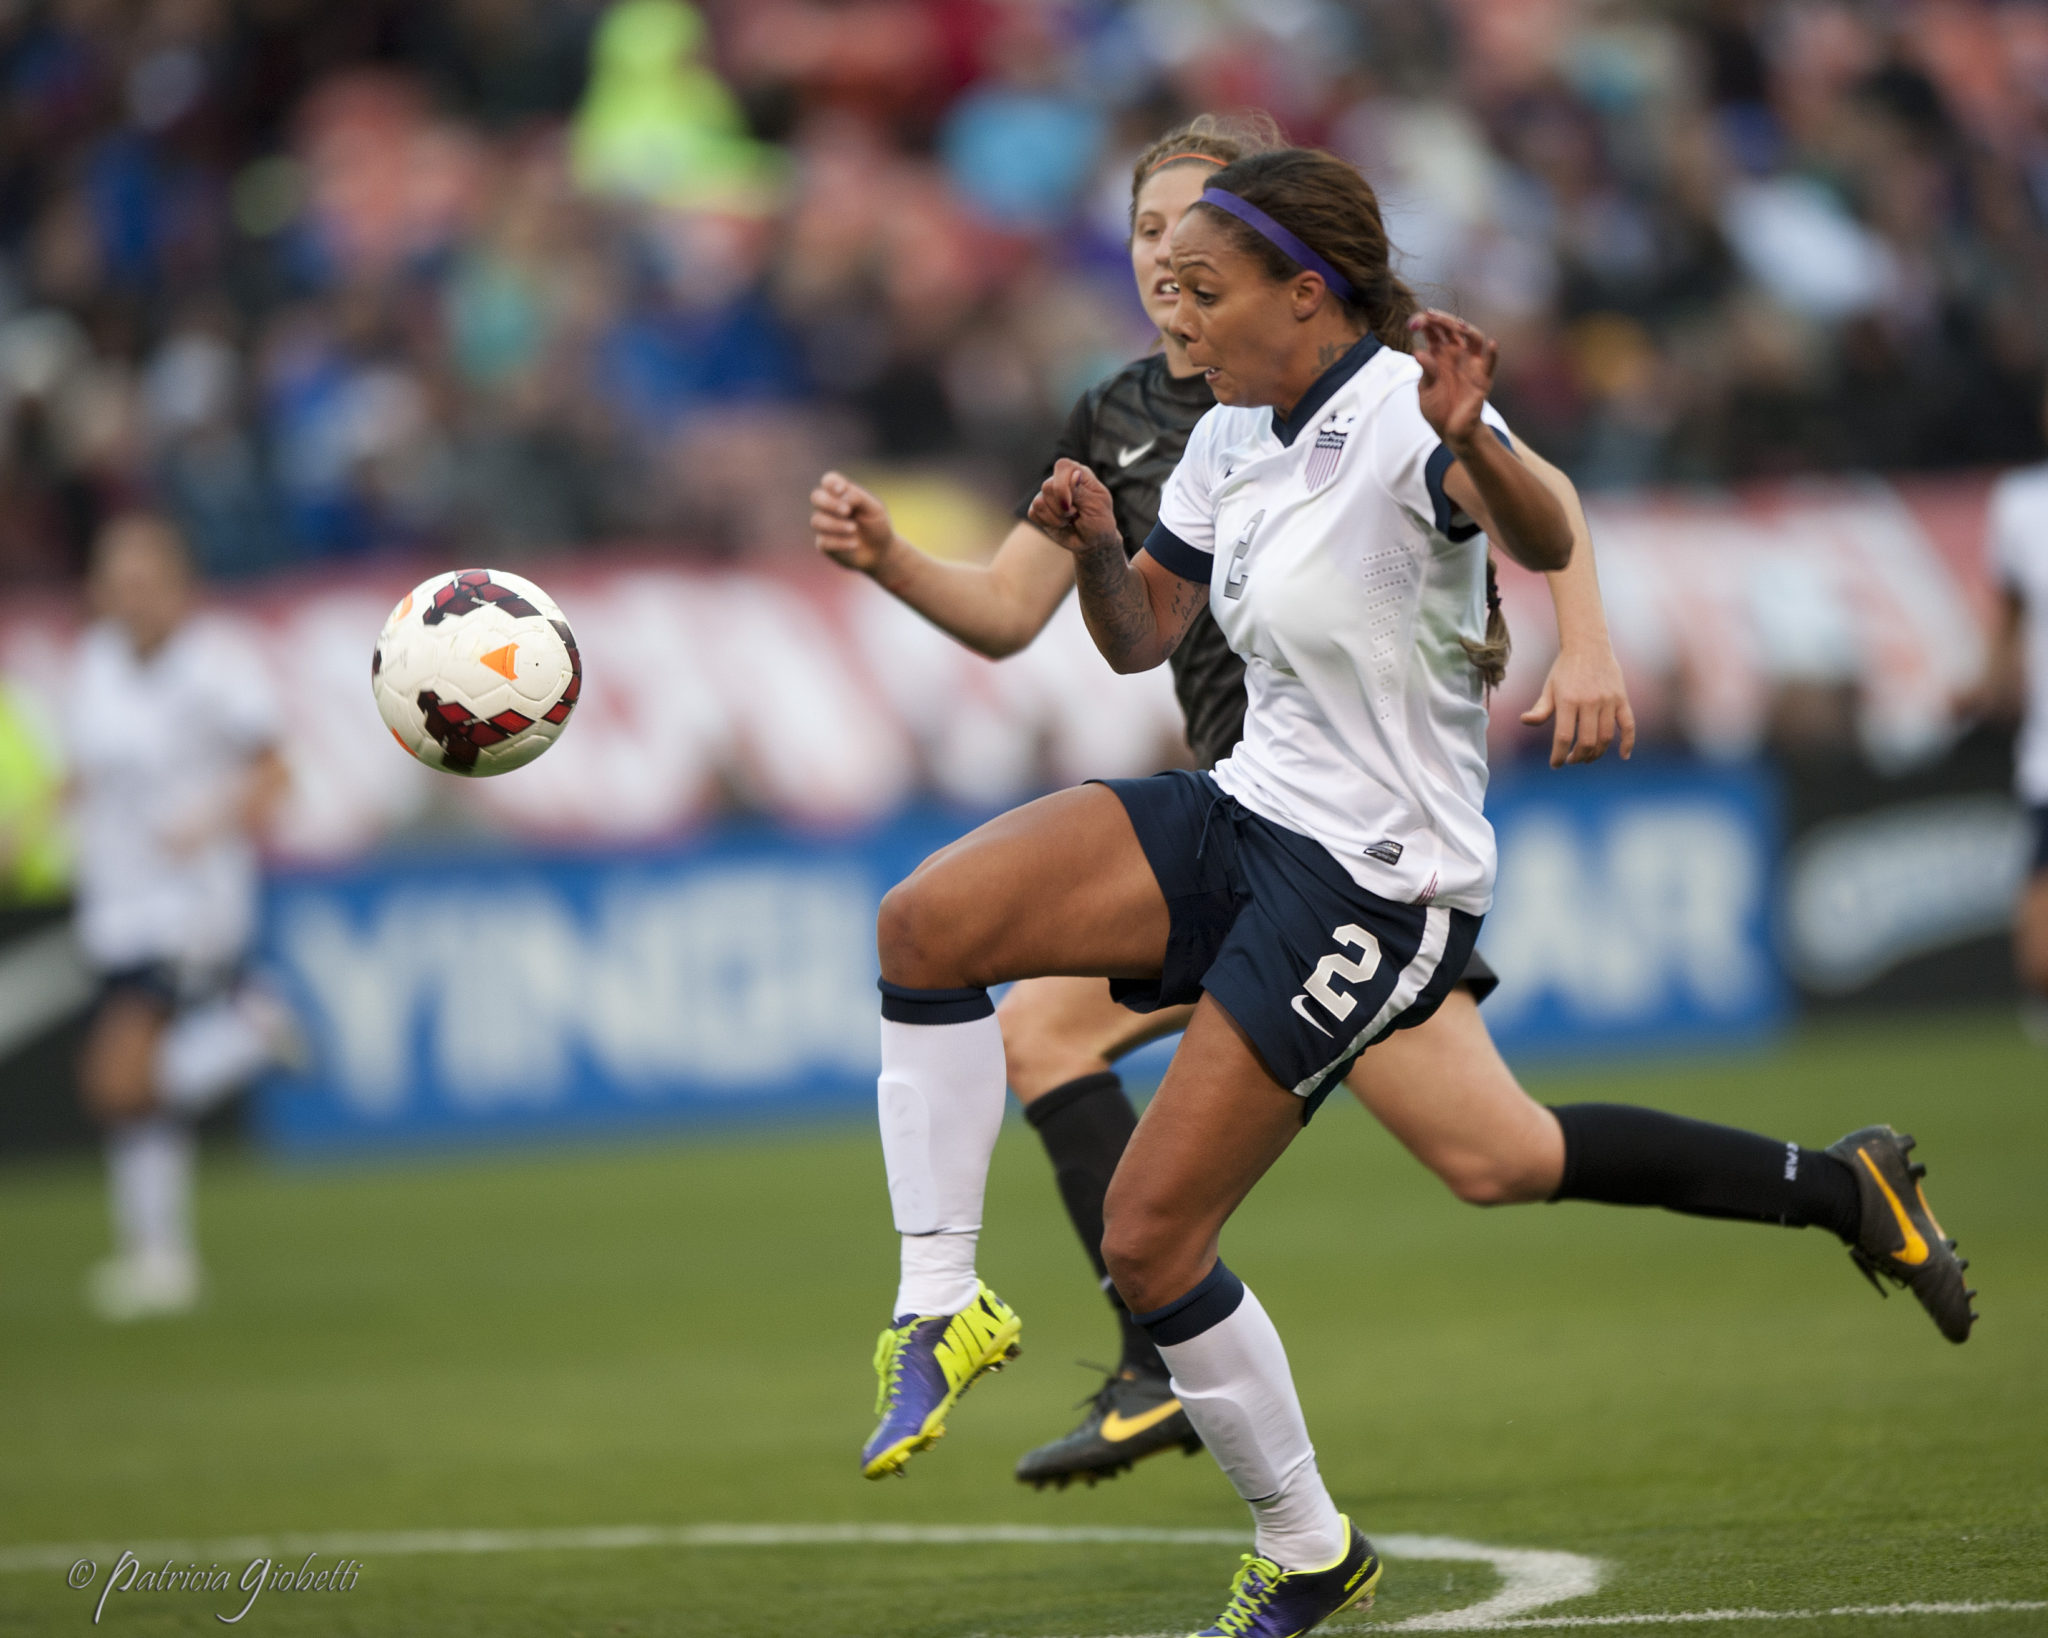 Sydney Leroux scored for the U.S. in a 1-1 draw with Japan. (Photo Copyright Patricia Giobetti for The Equalizer)